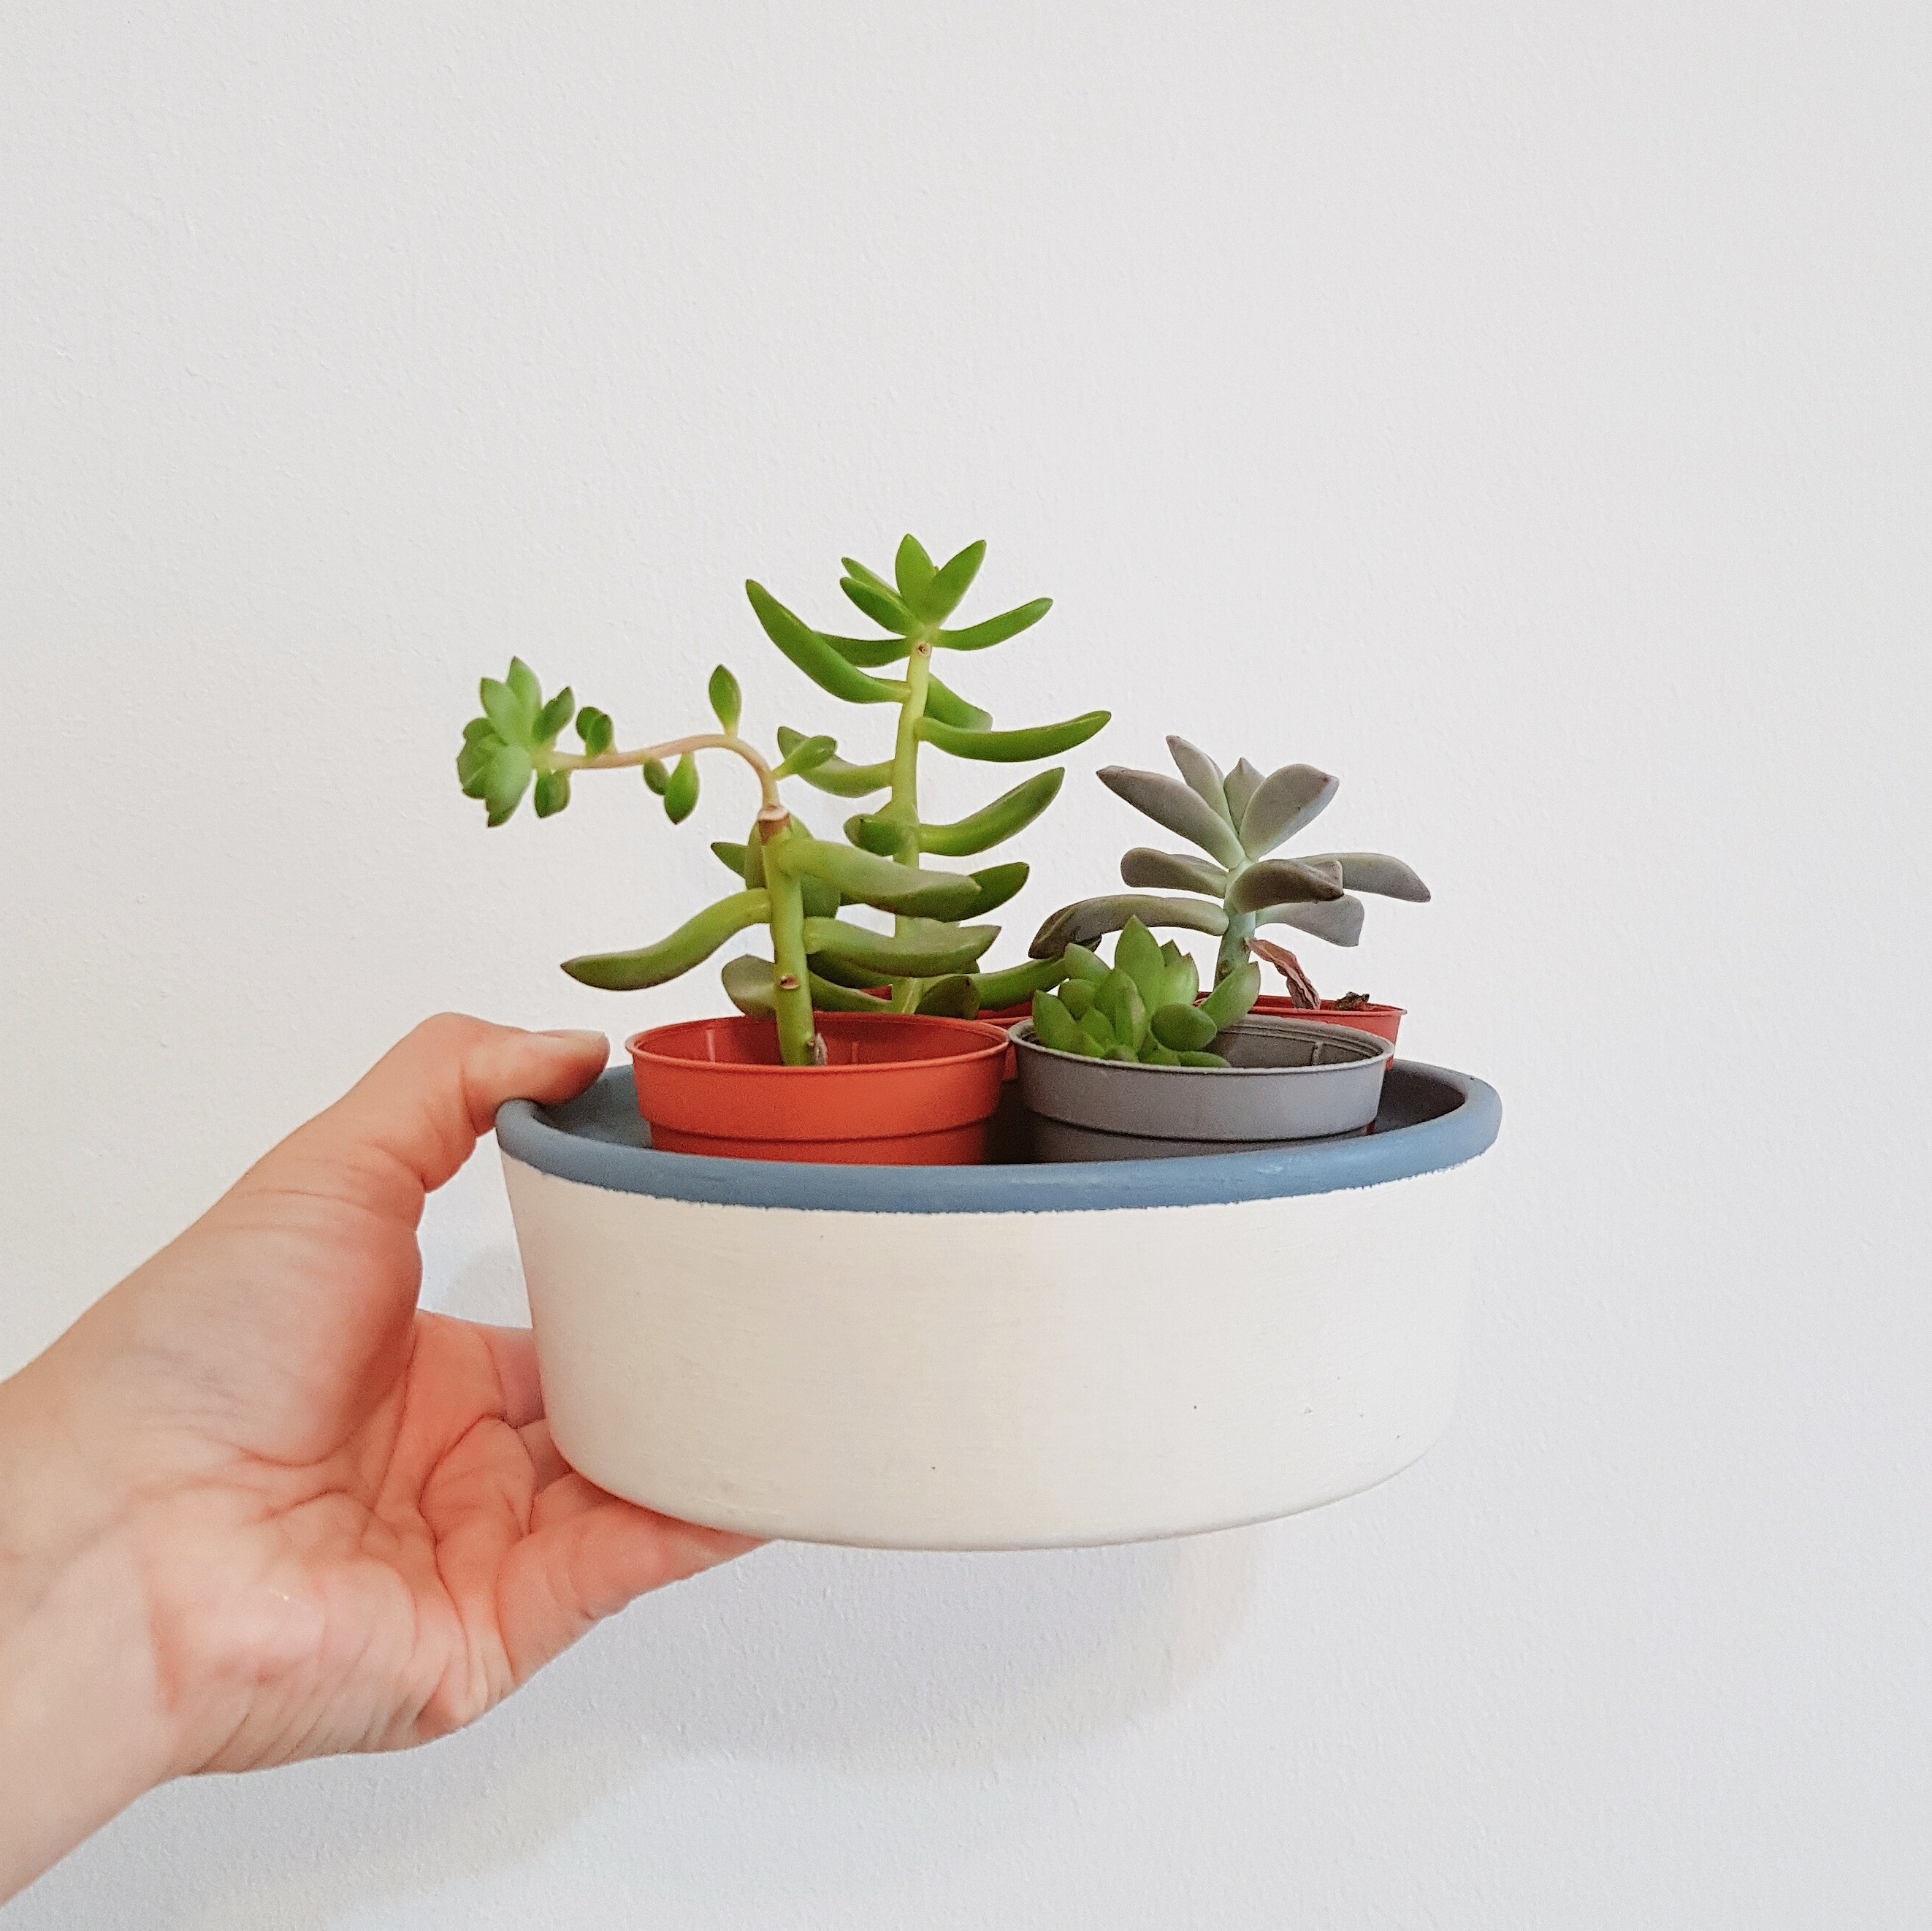 How To Water Succulents The Rain In Spain